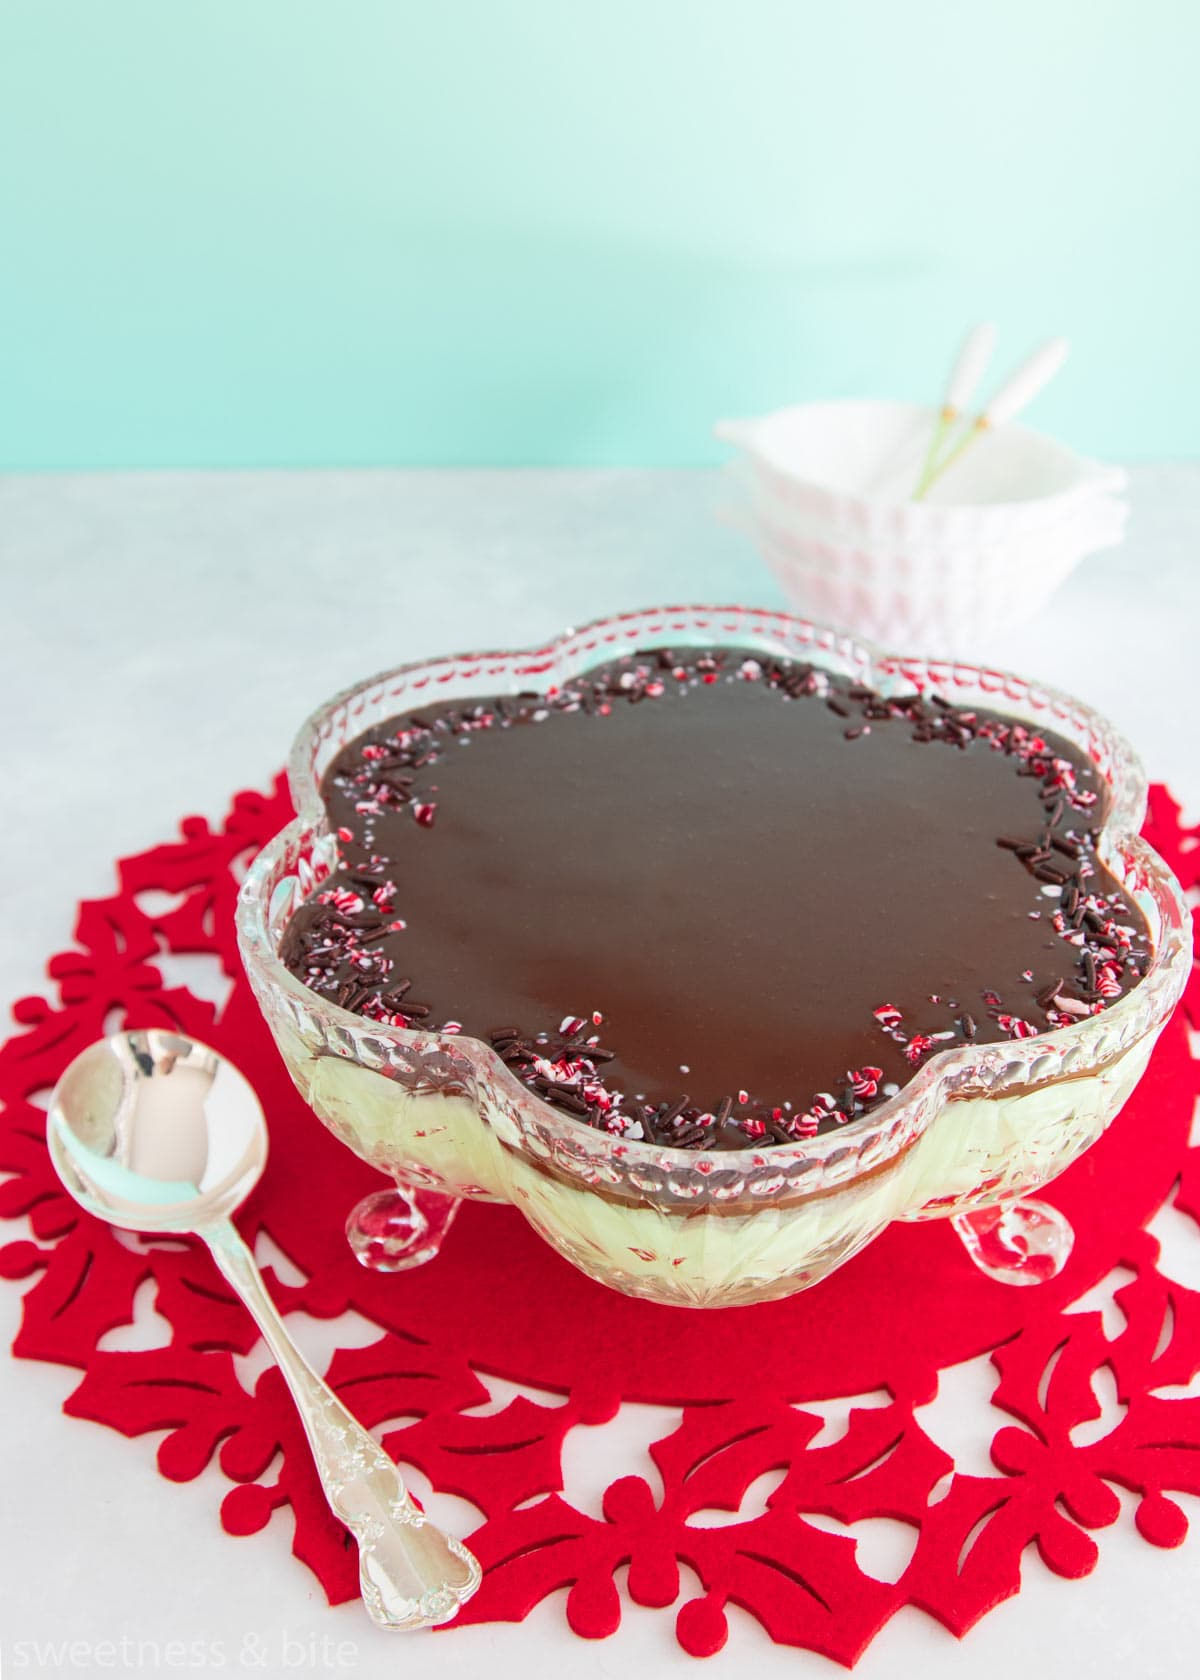 Mint mousse in a flower shaped cut glass bowl, topped with dark chocolate ganache and crushed candy canes.